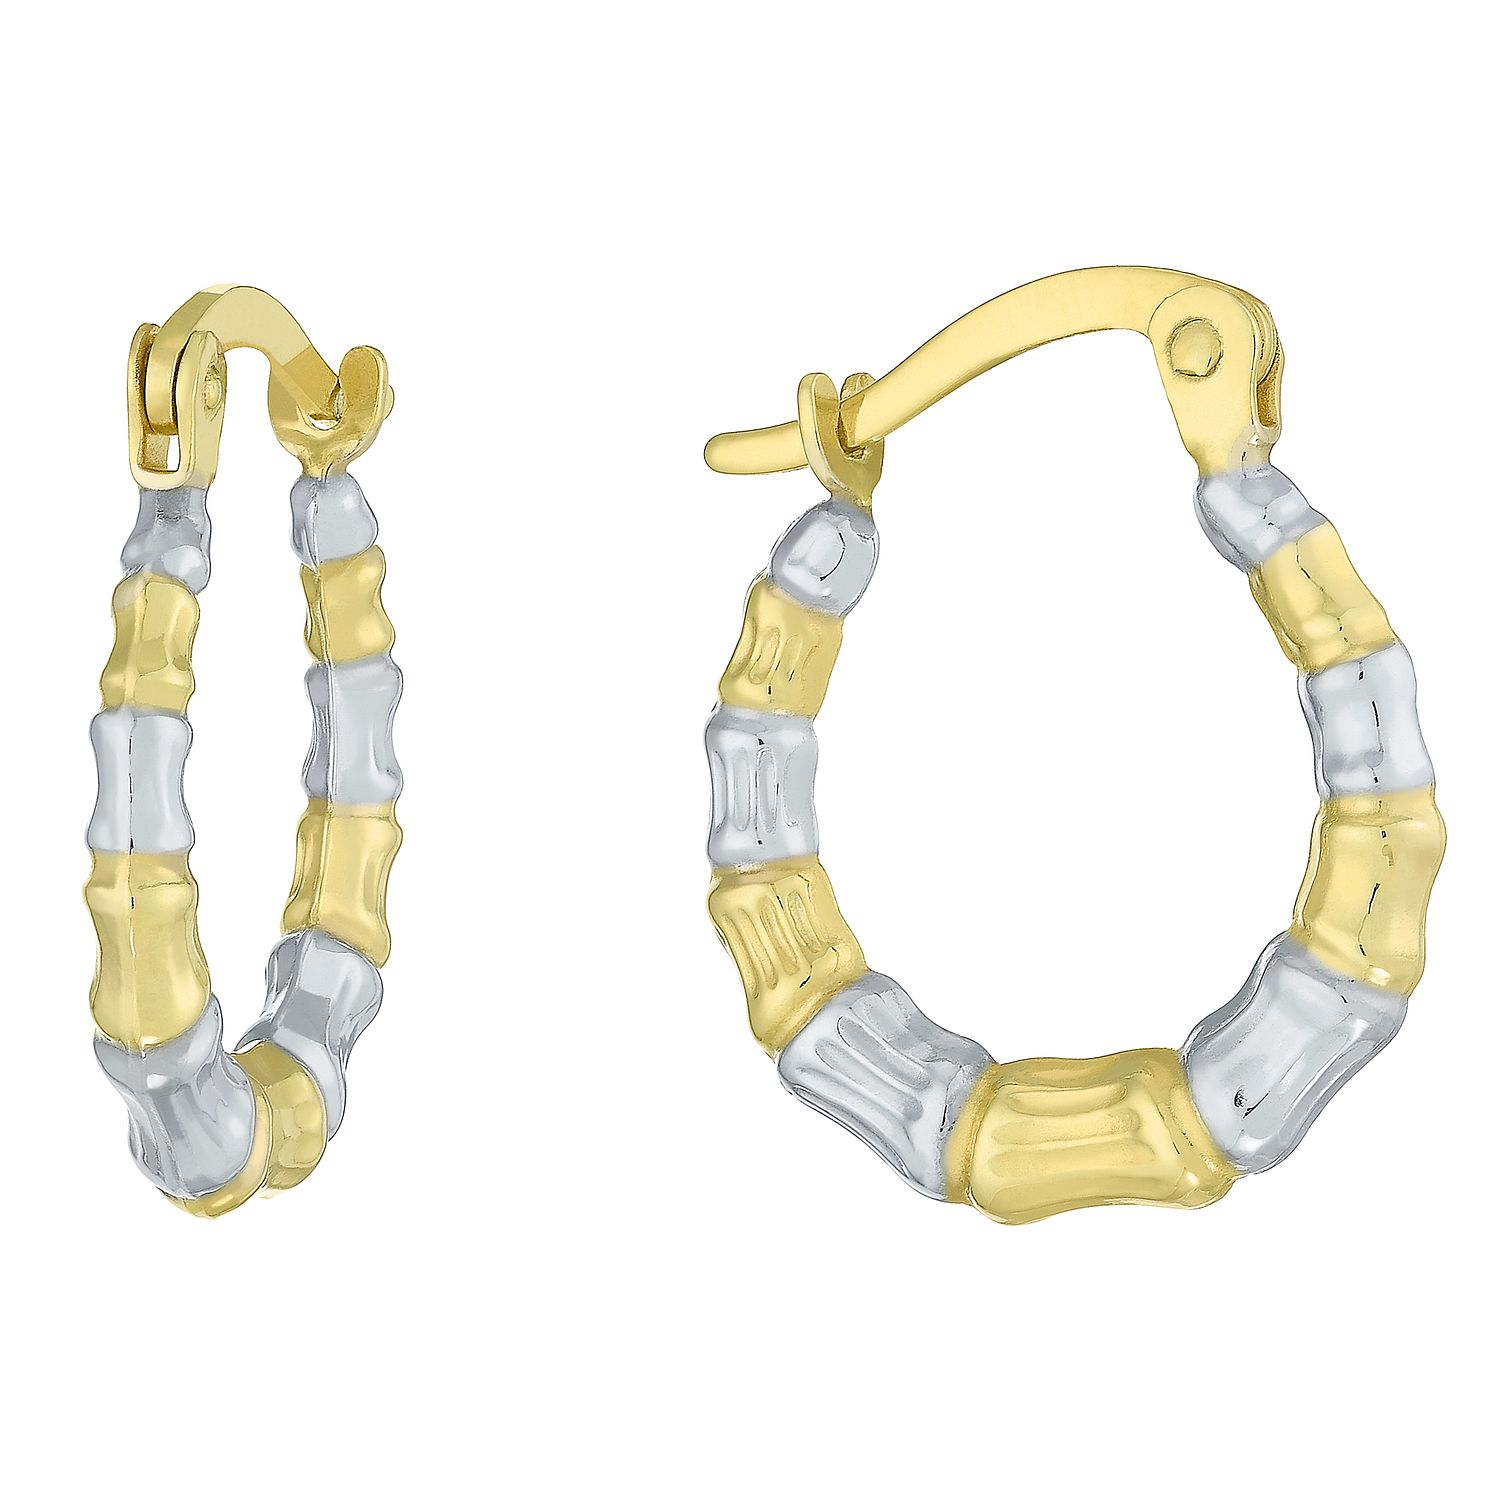 Together Silver & 9ct Bonded Gold Two Colour Hoop Earrings - Product number 8110654